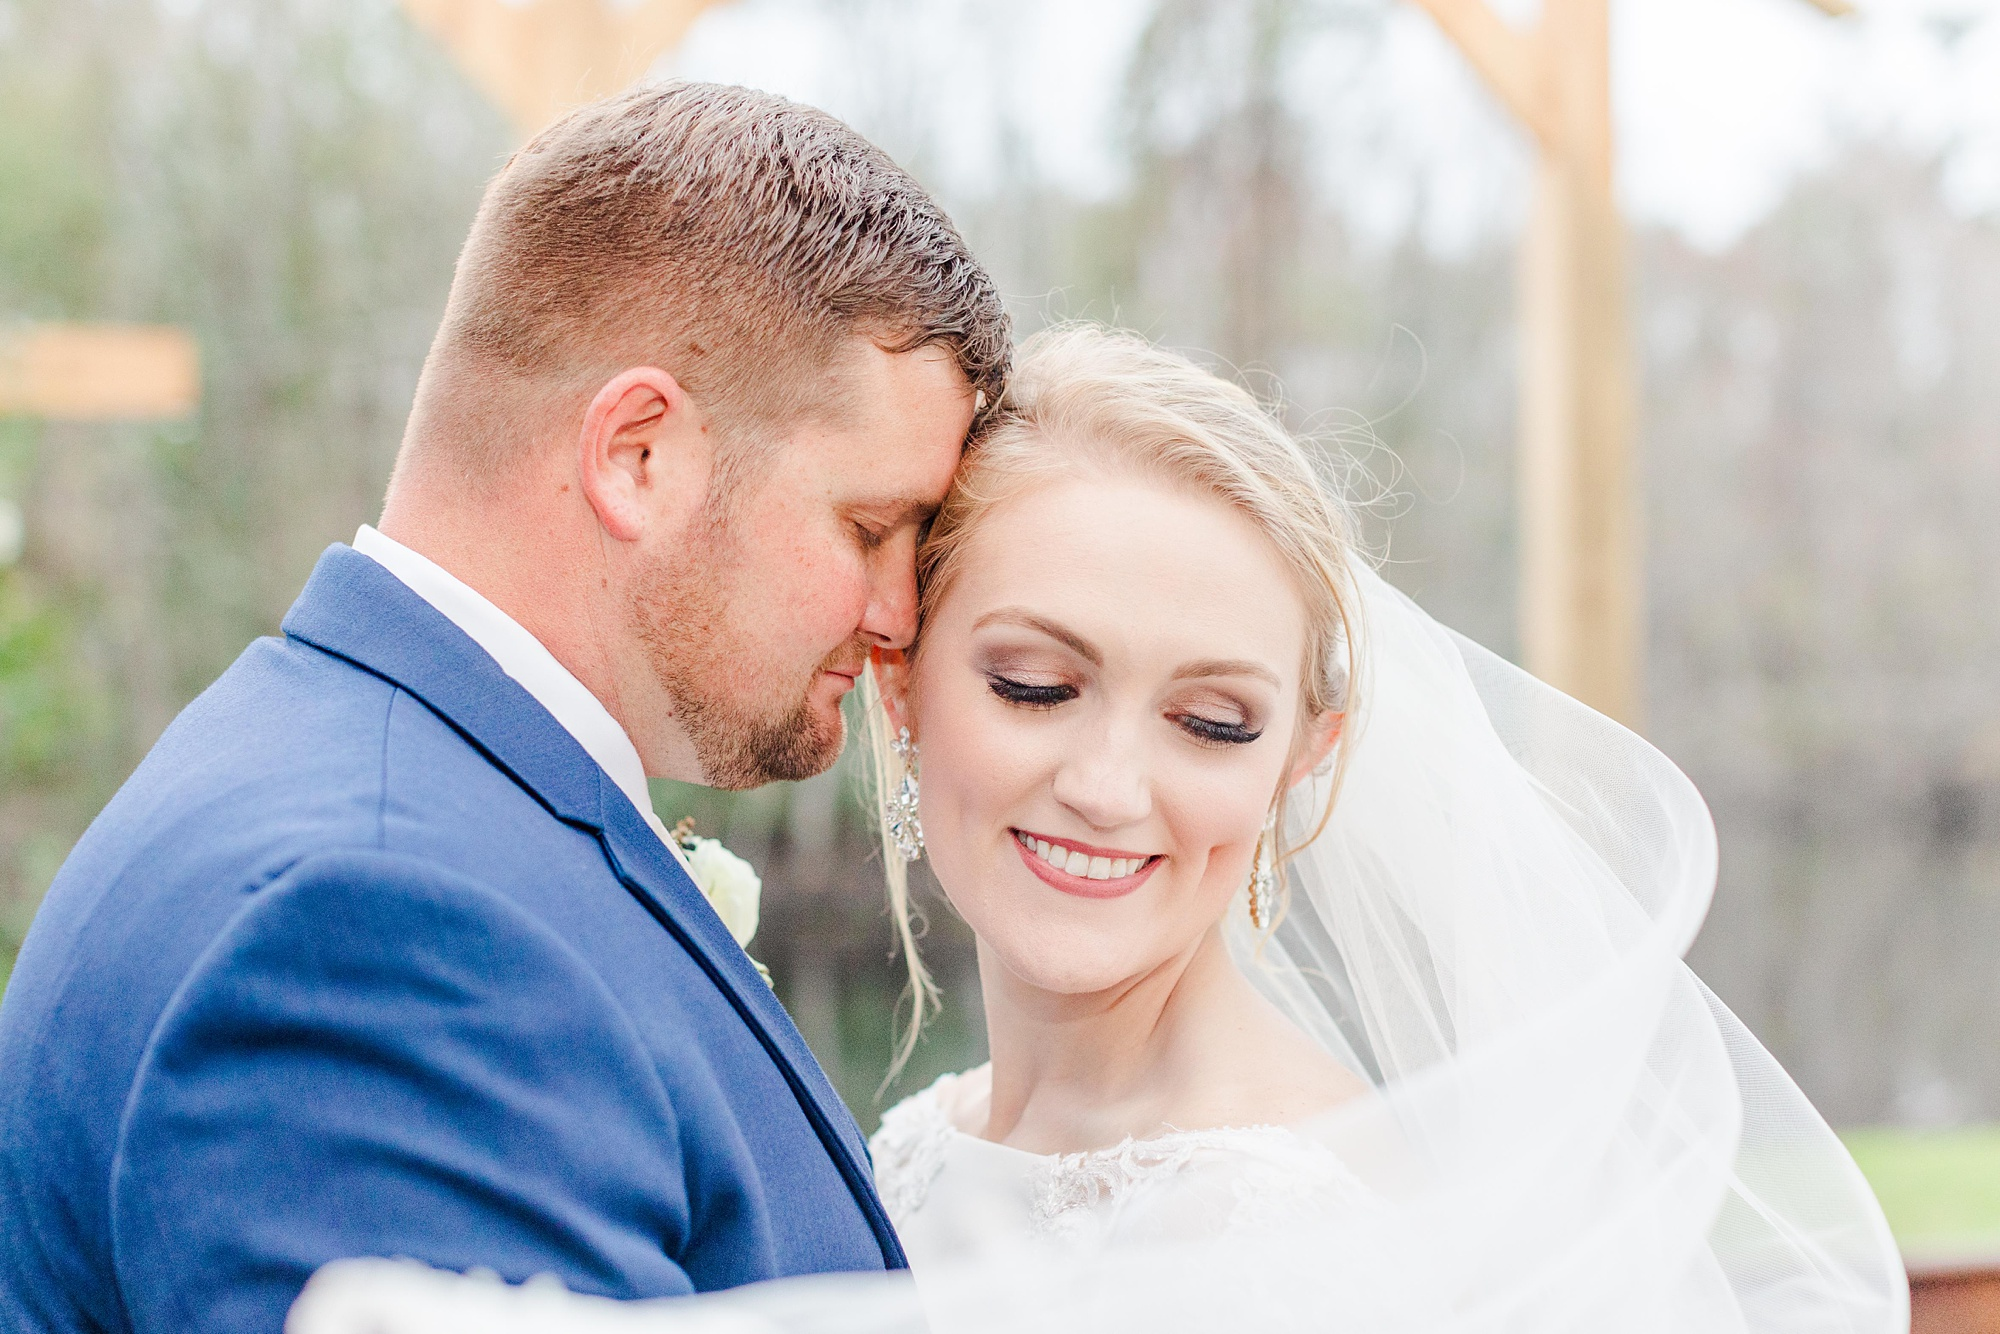 groom nuzzles bride's forehead with veil wrapped around them